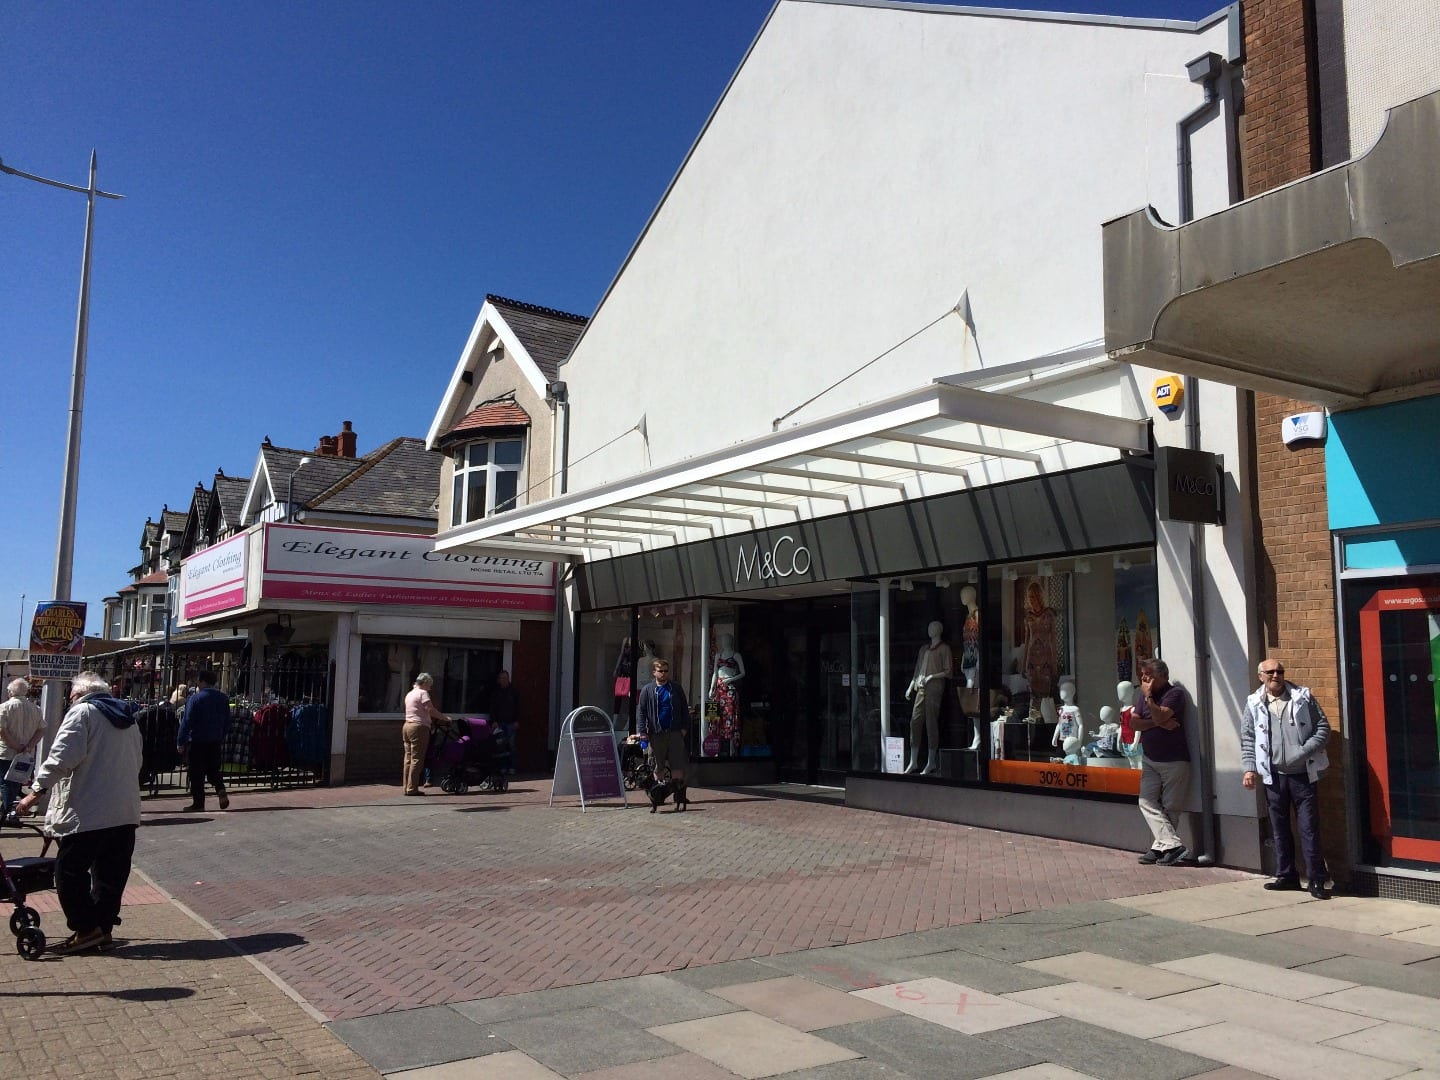 People waiting outside M&Co Cleveleys